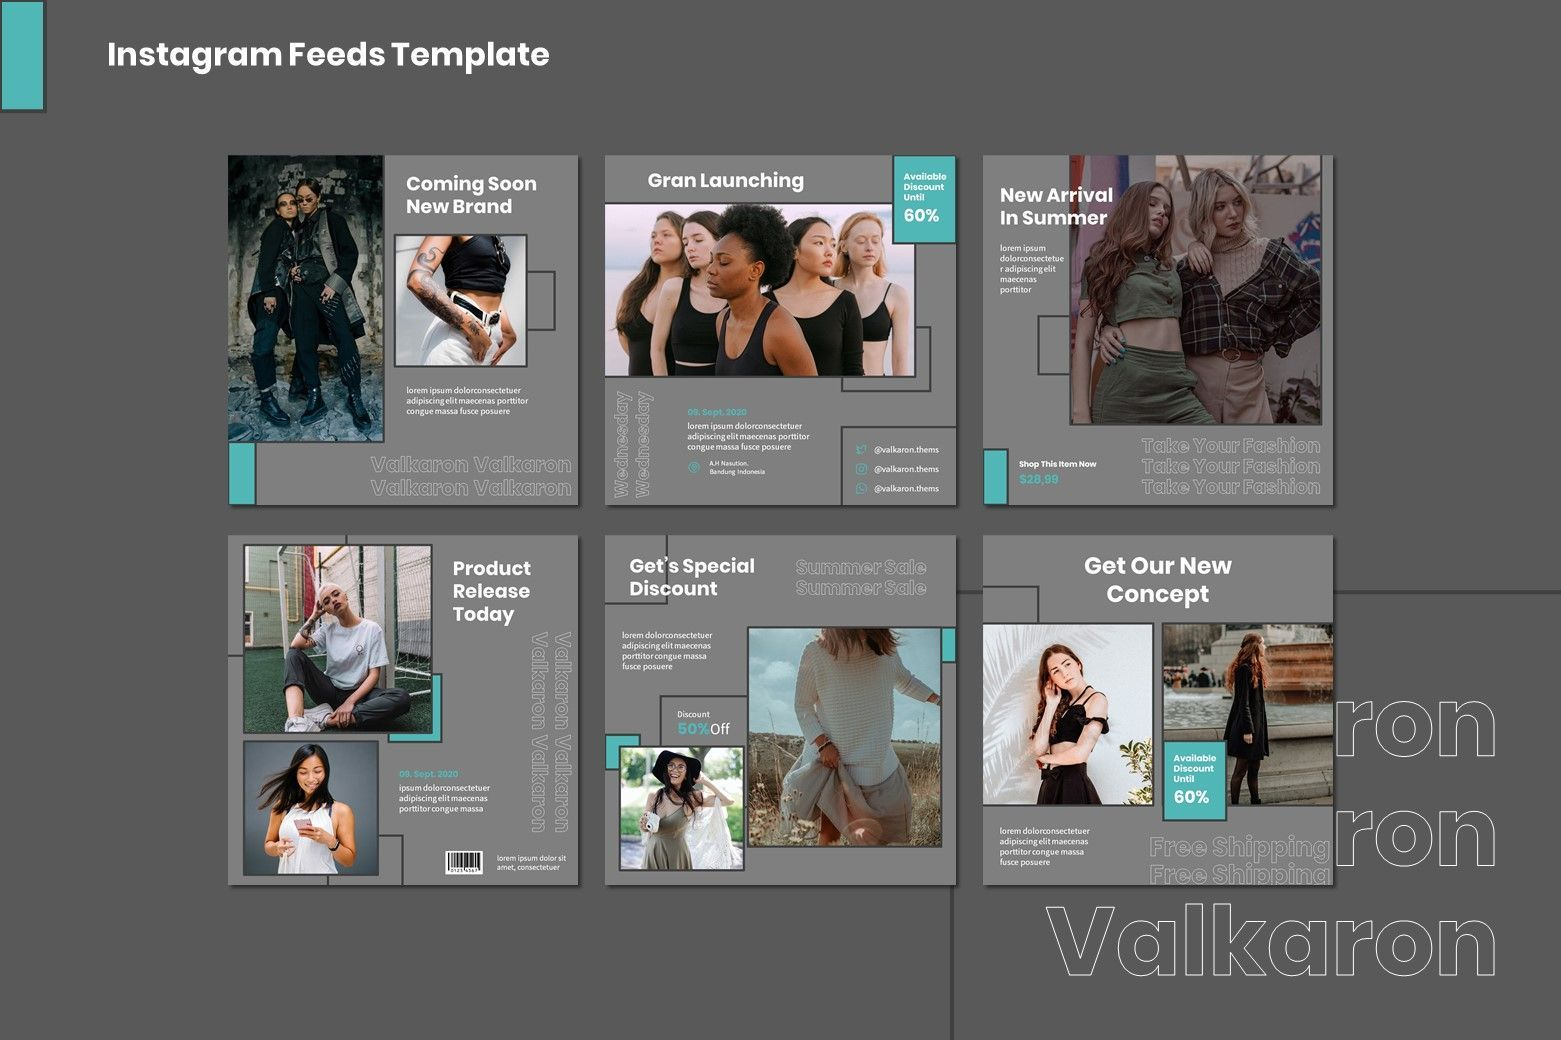 Valkaron - Google Slides Template, Slide 7, 07991, Presentation Templates — PoweredTemplate.com